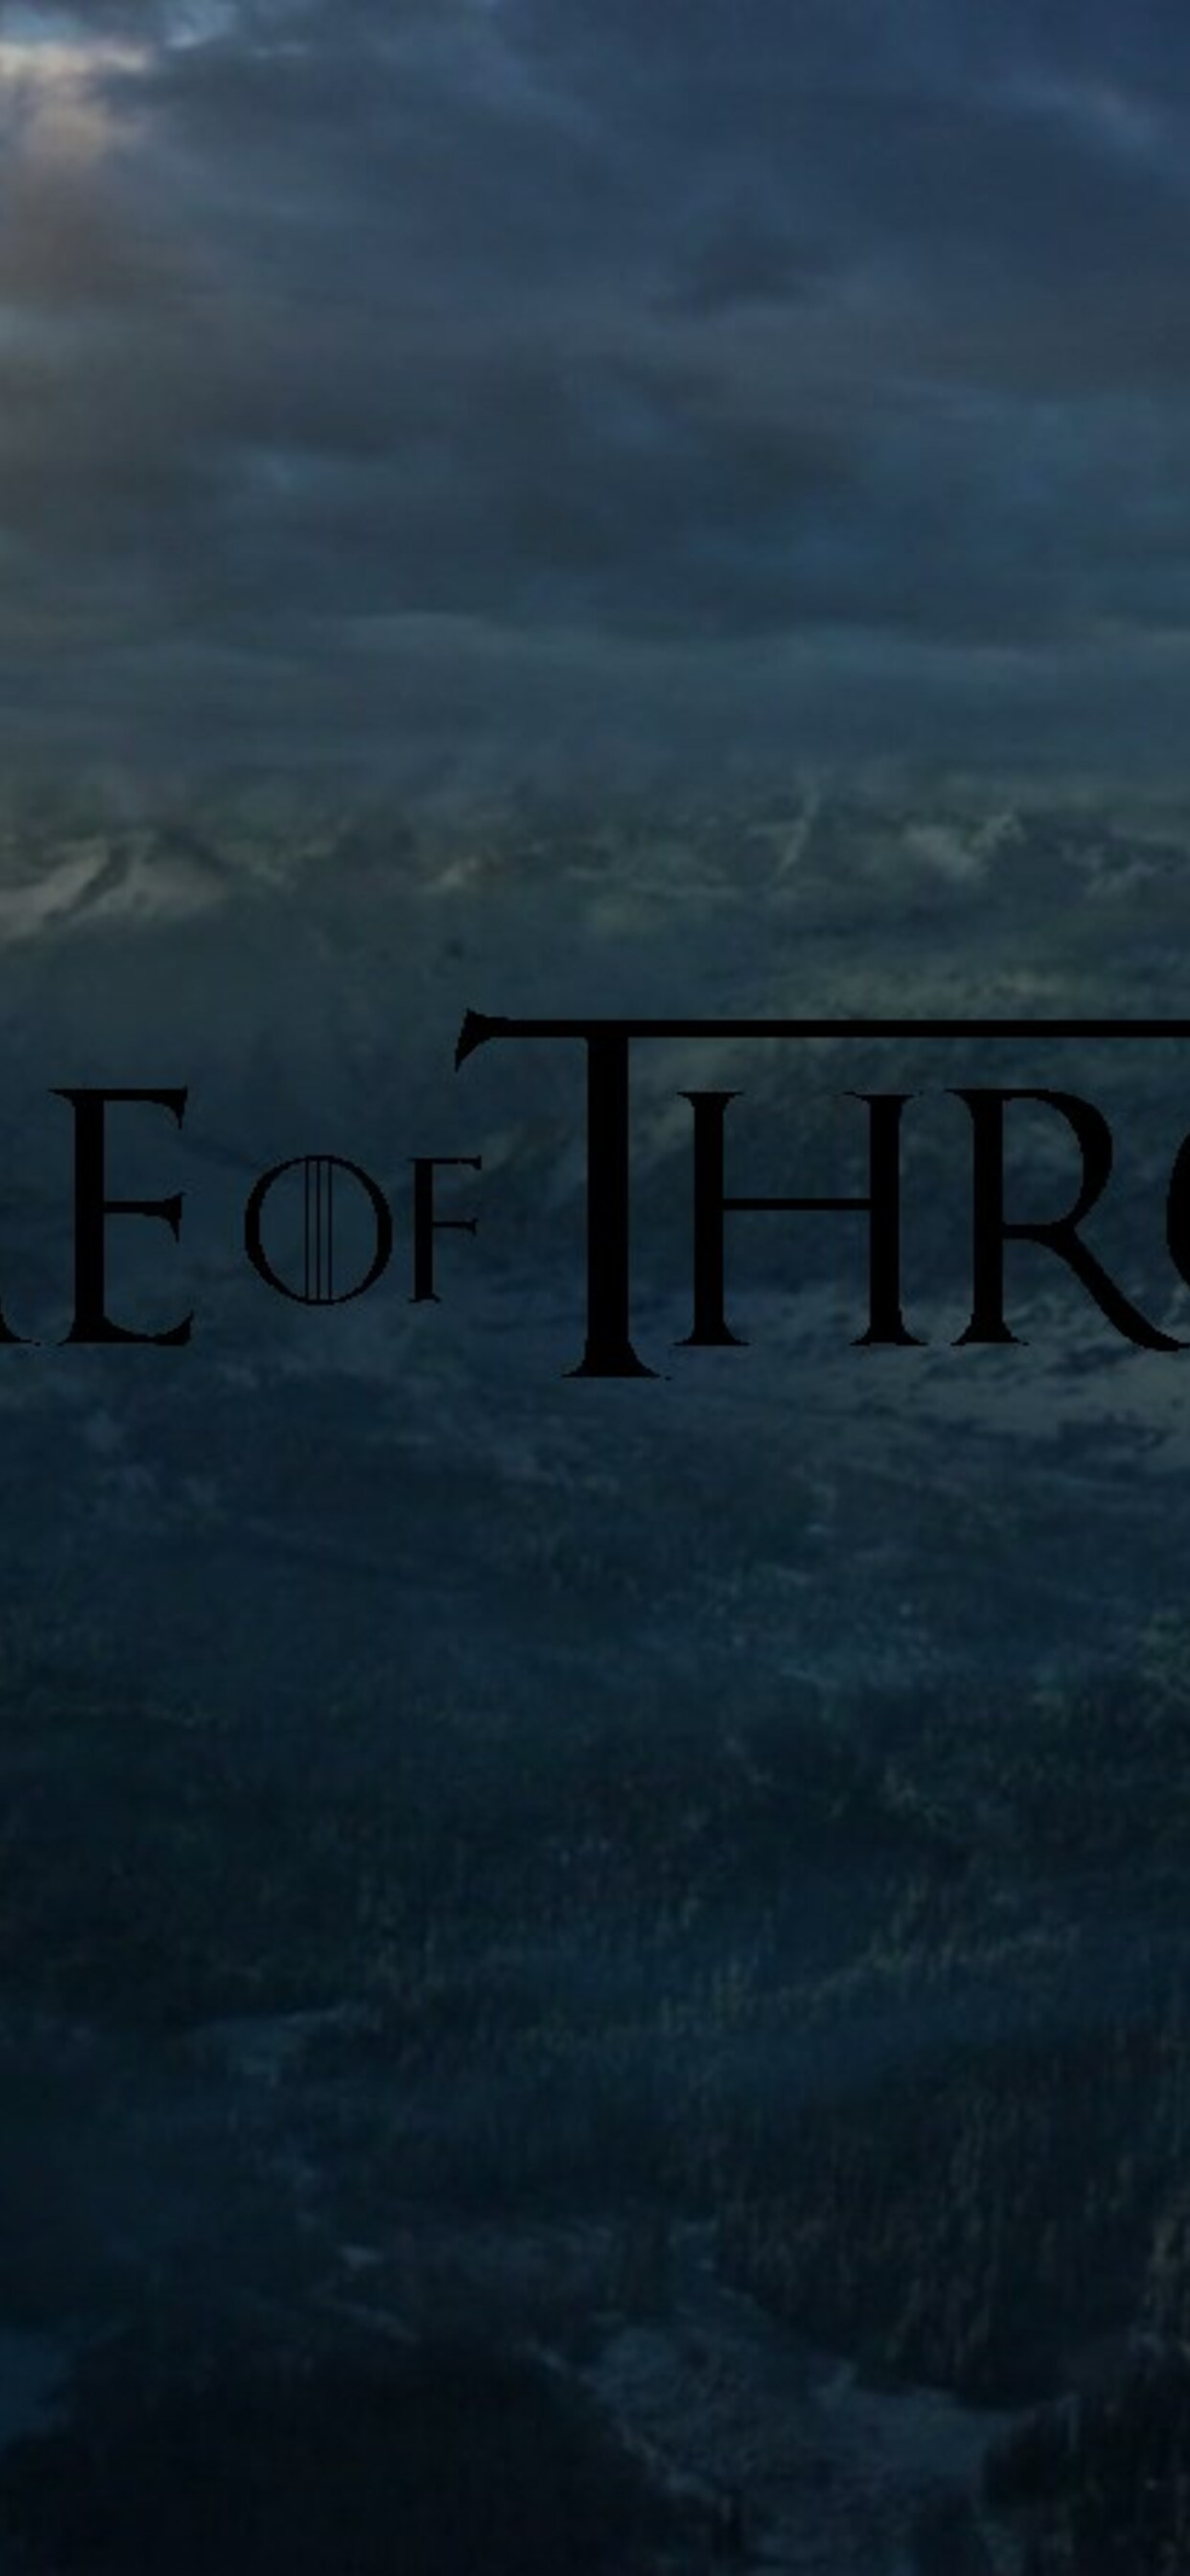 game-of-thrones-typography.jpg